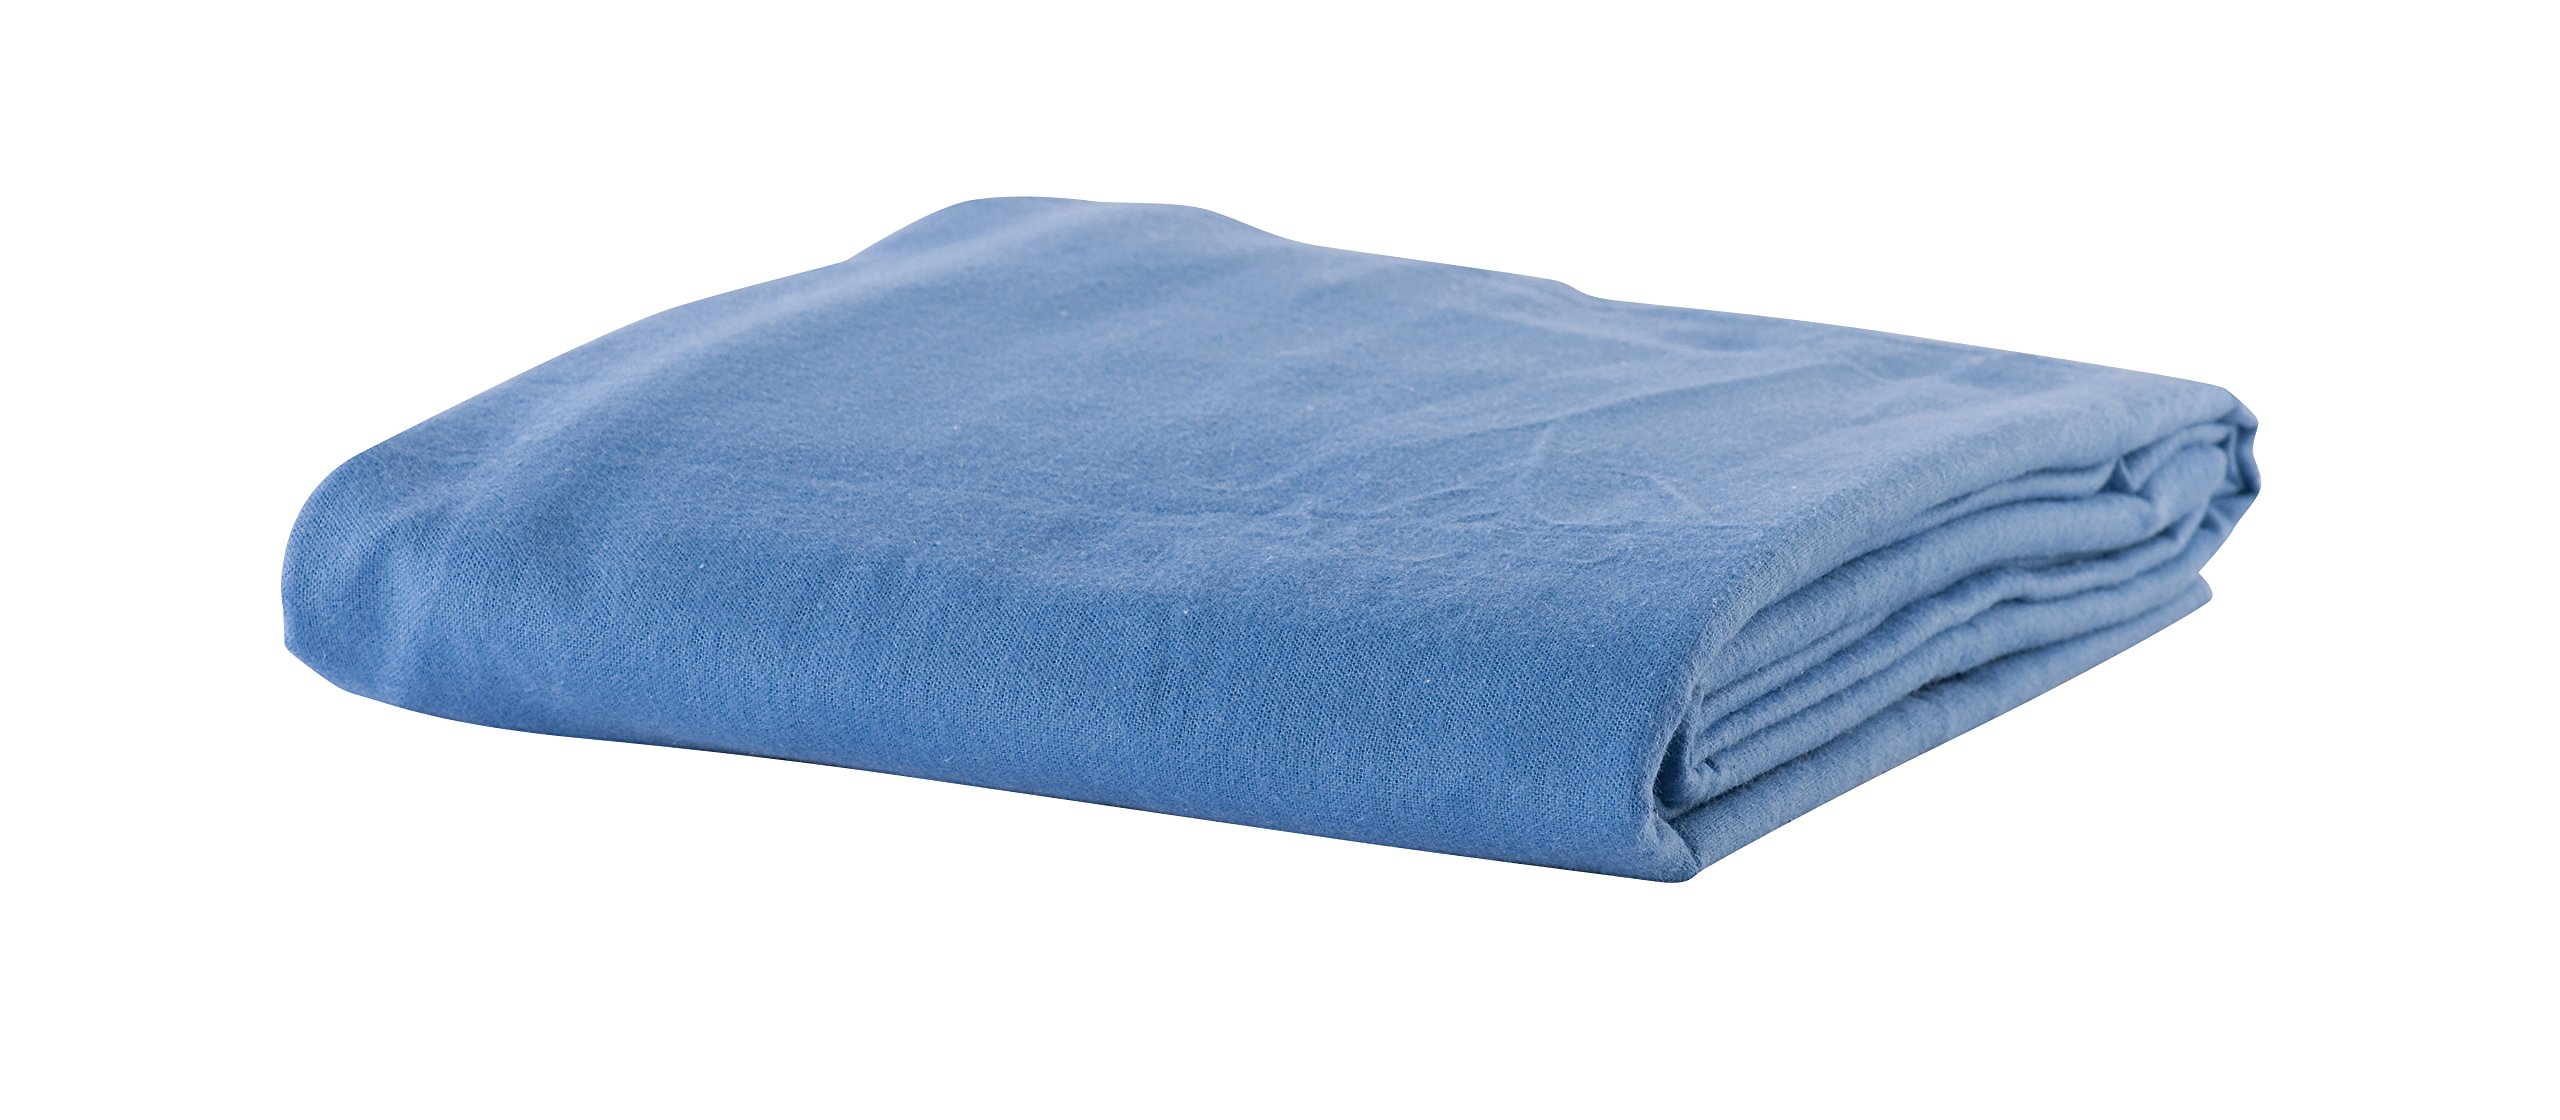 NRG Deluxe Massage Flannel 3 Piece Sheet Set Including Face Rest Cover, Flat Sheet & Fitted Sheet Massage Tables (Twilight Blue)